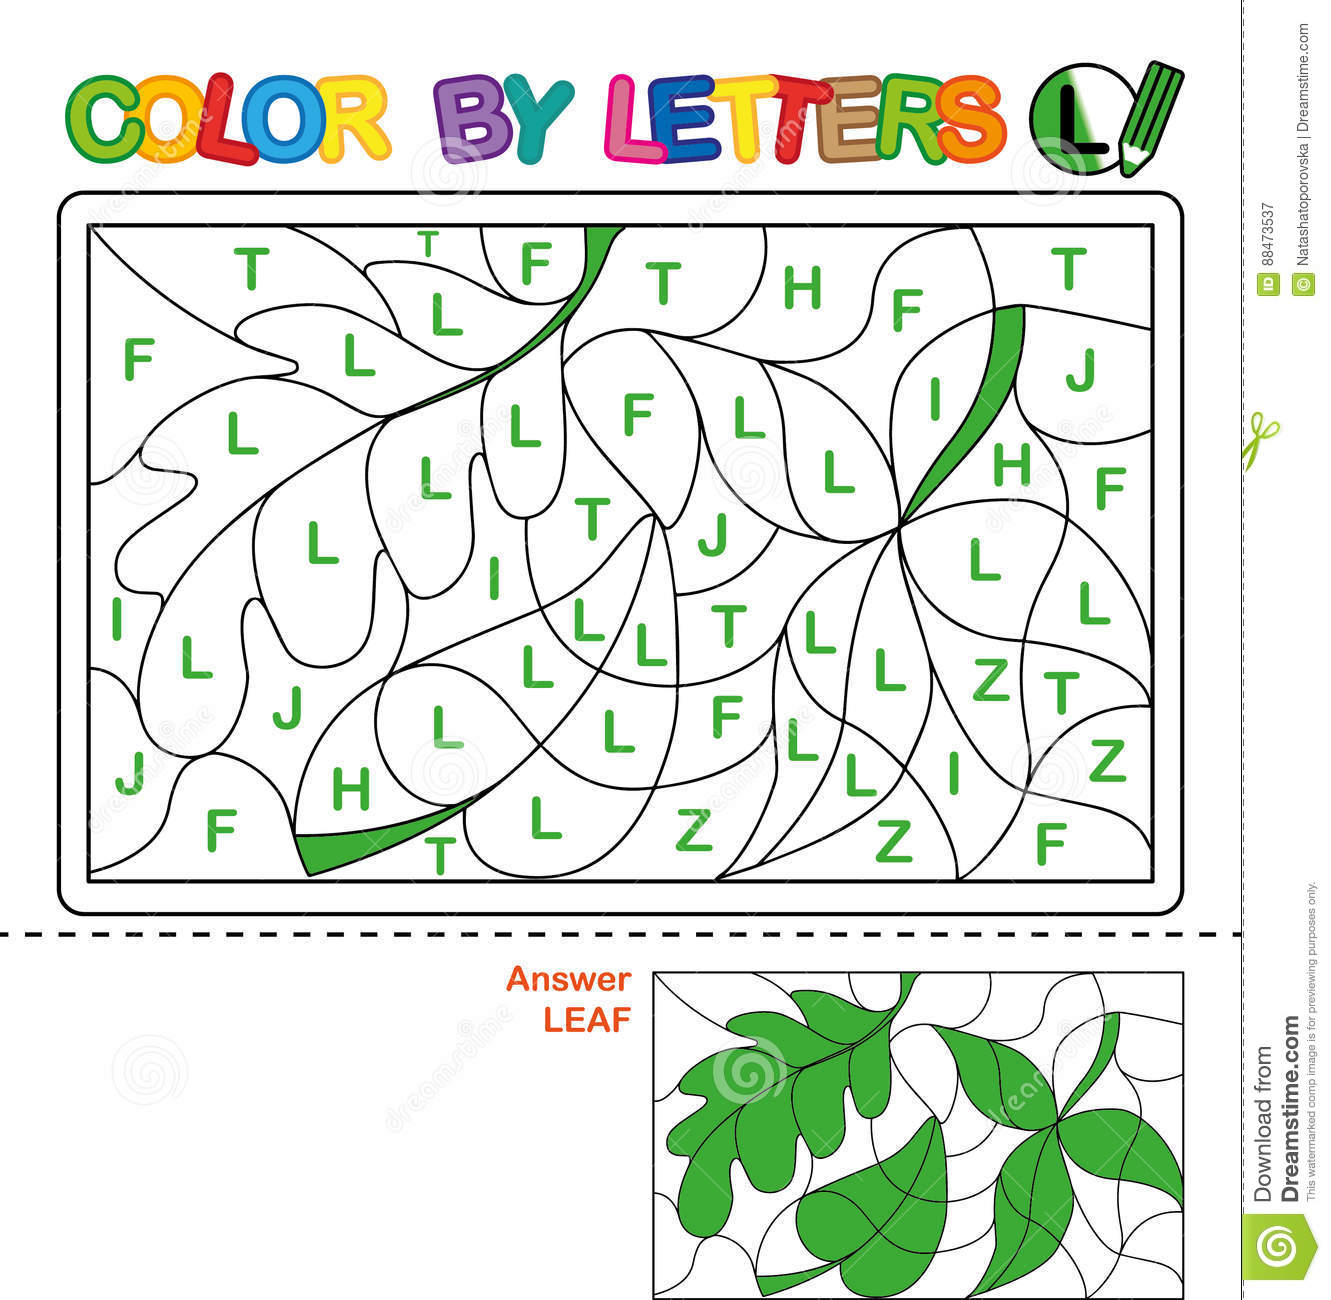 Color By Letter Puzzle For Children Leaf Stock Vector